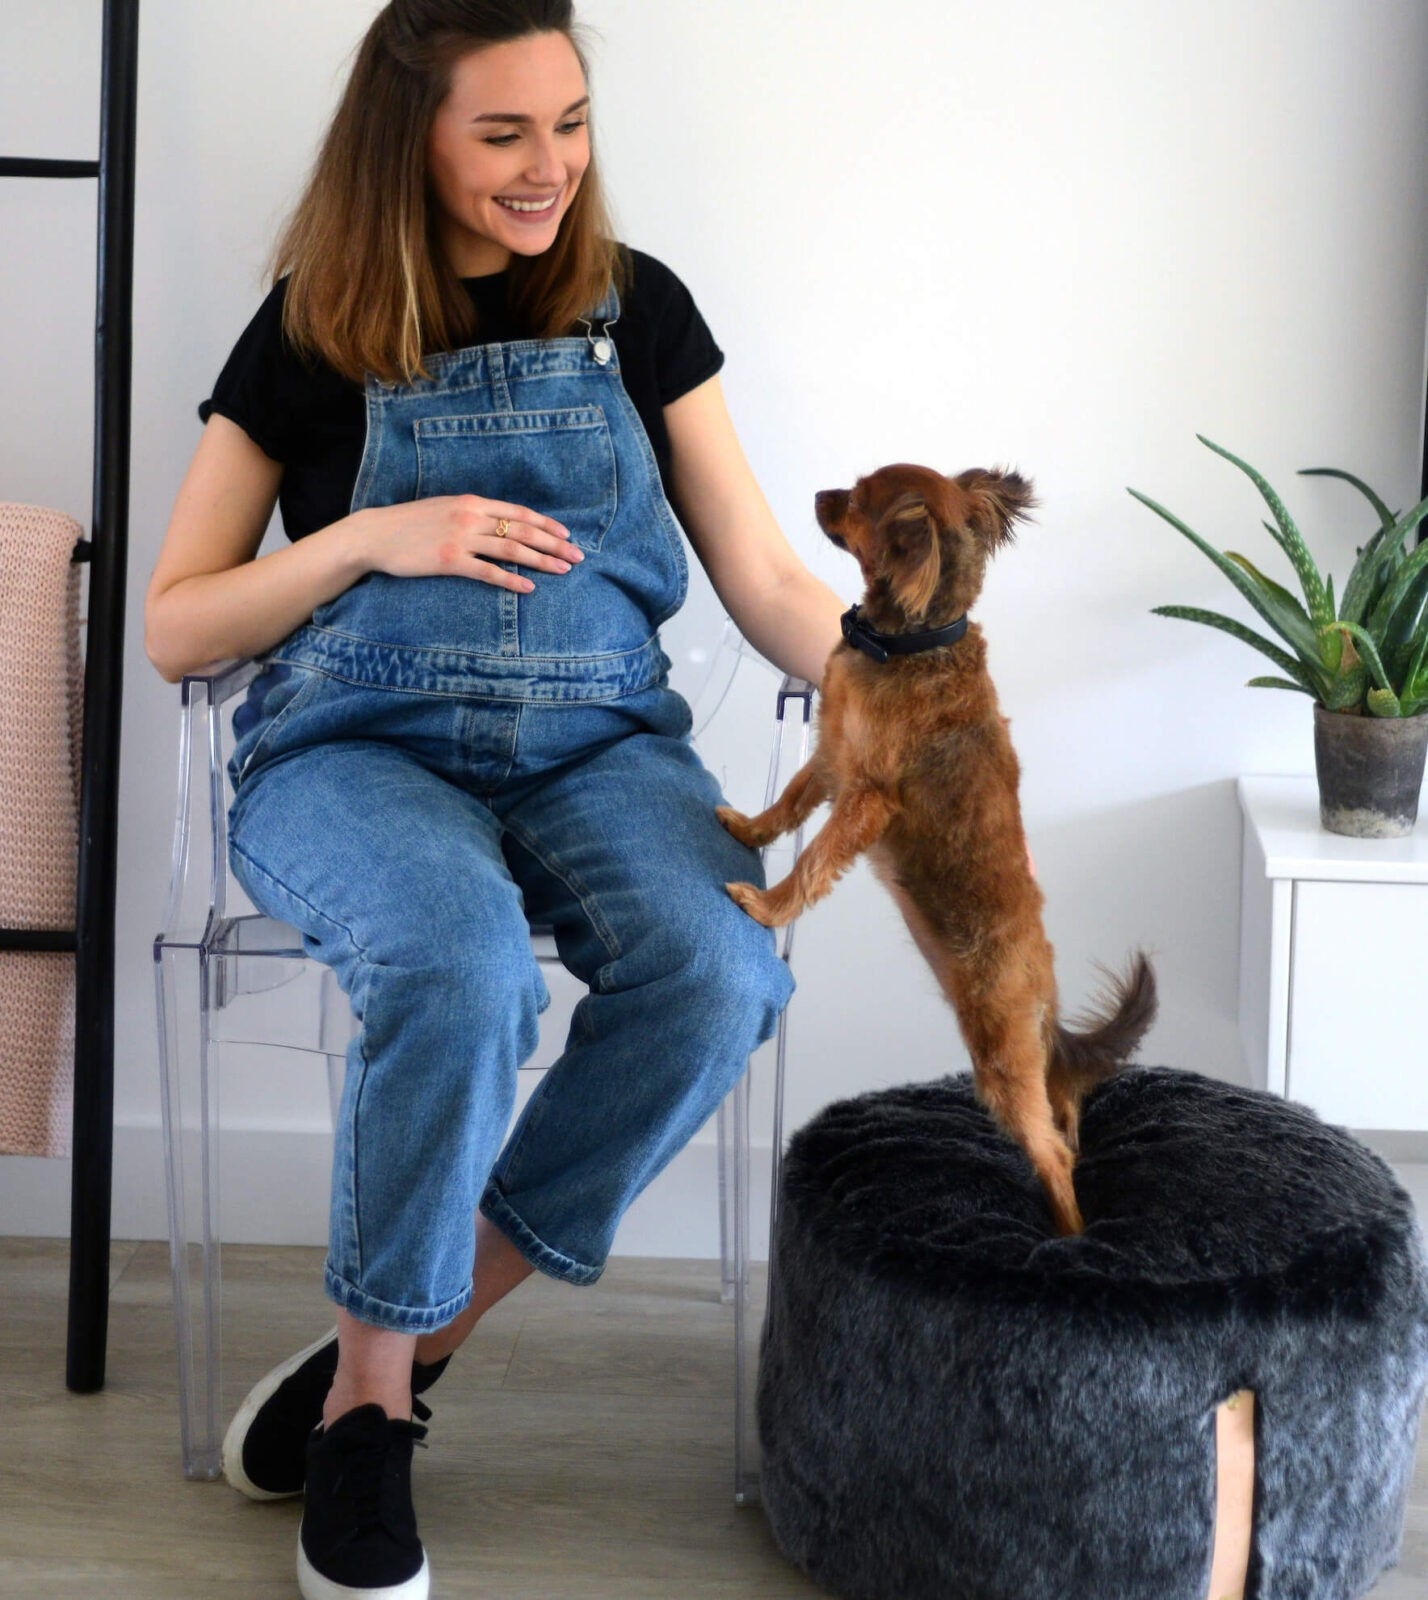 Introducing a new hygge dog collection made in London